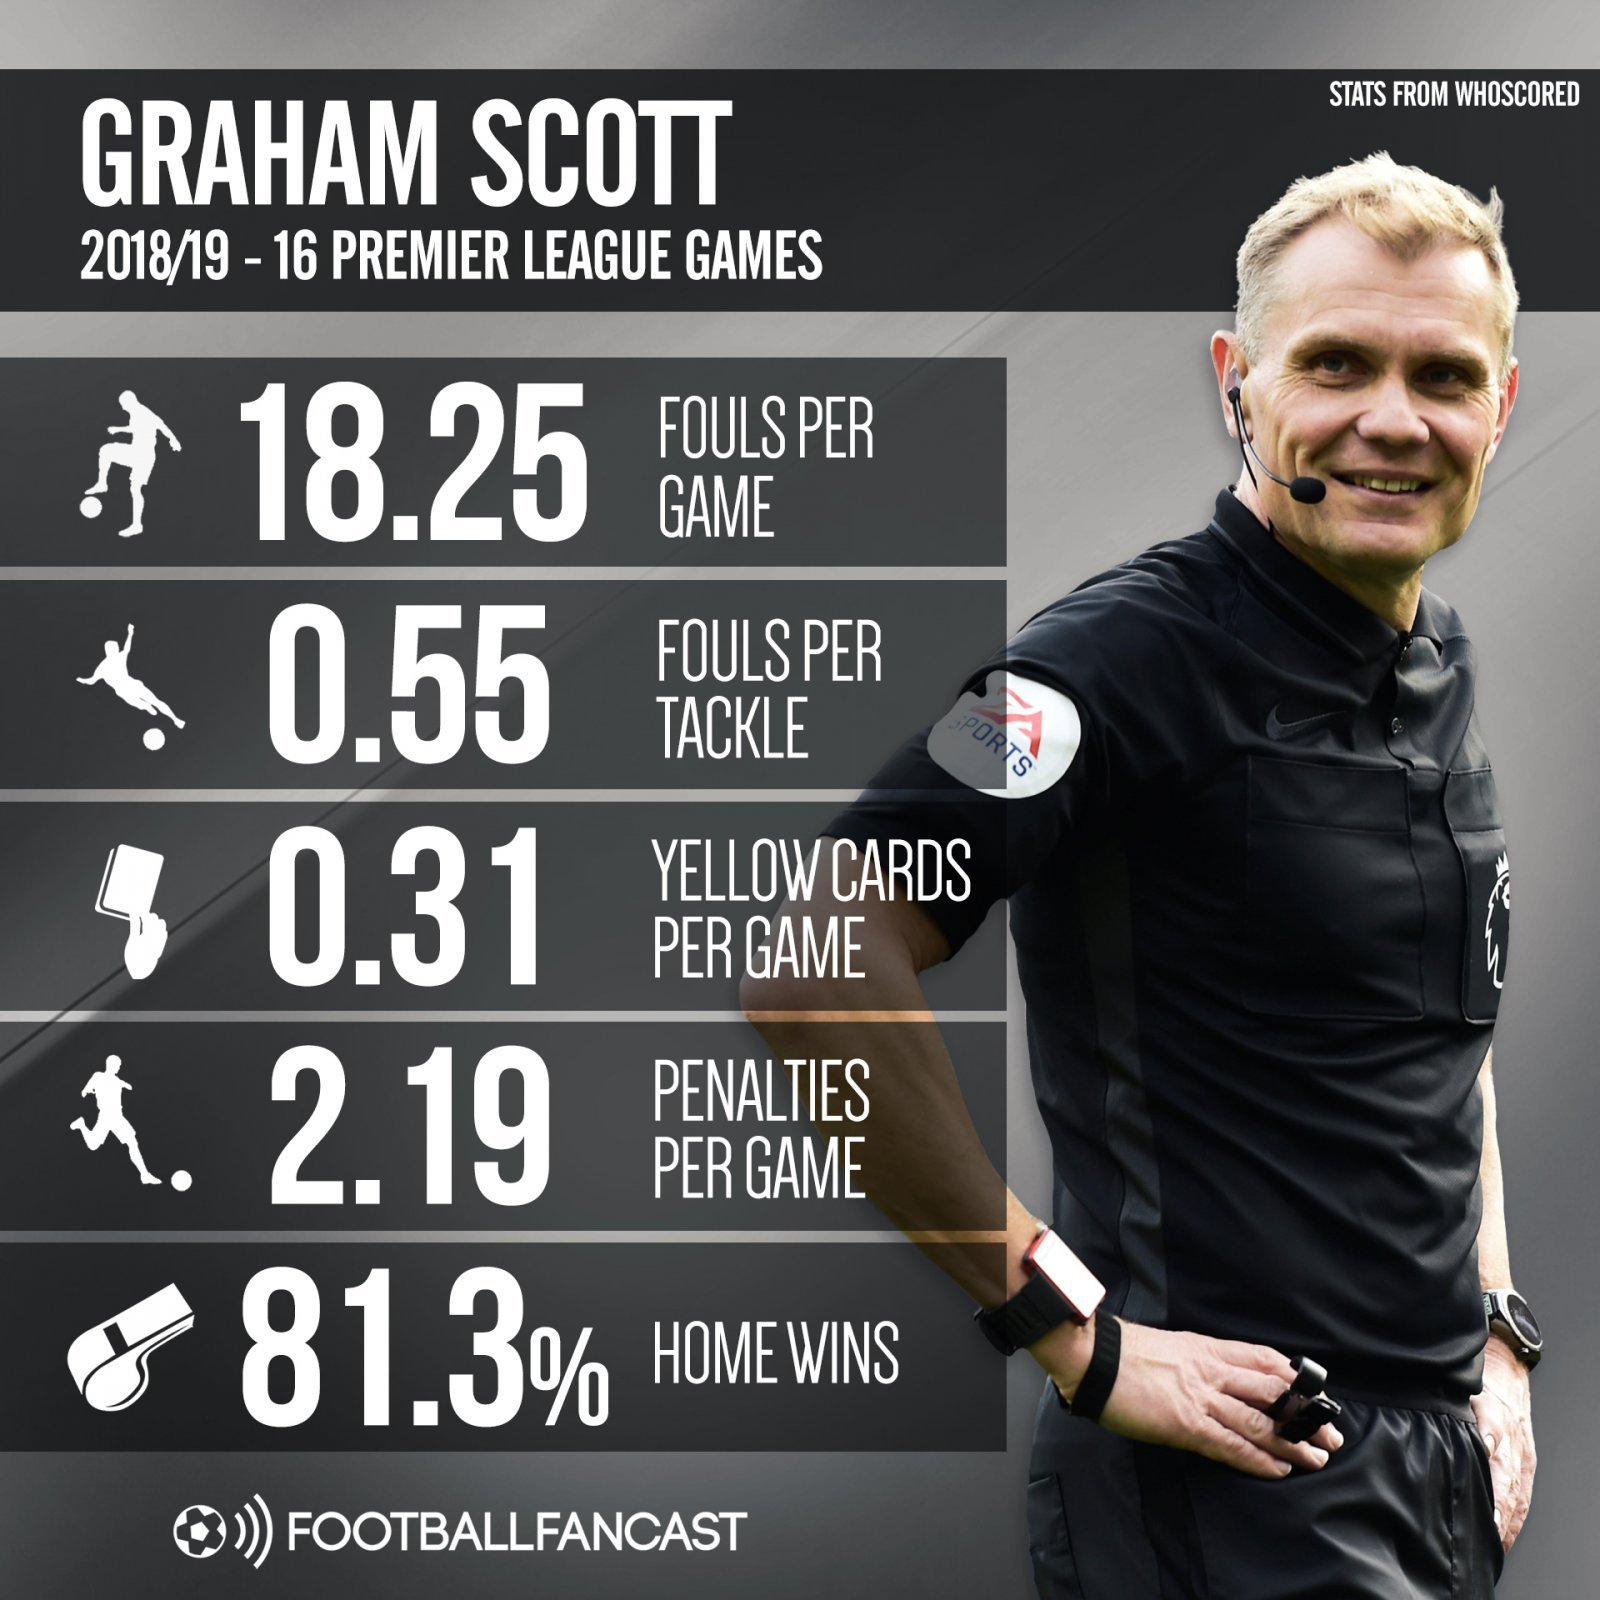 Graham Scott 2018-19 - 16 Premier League games